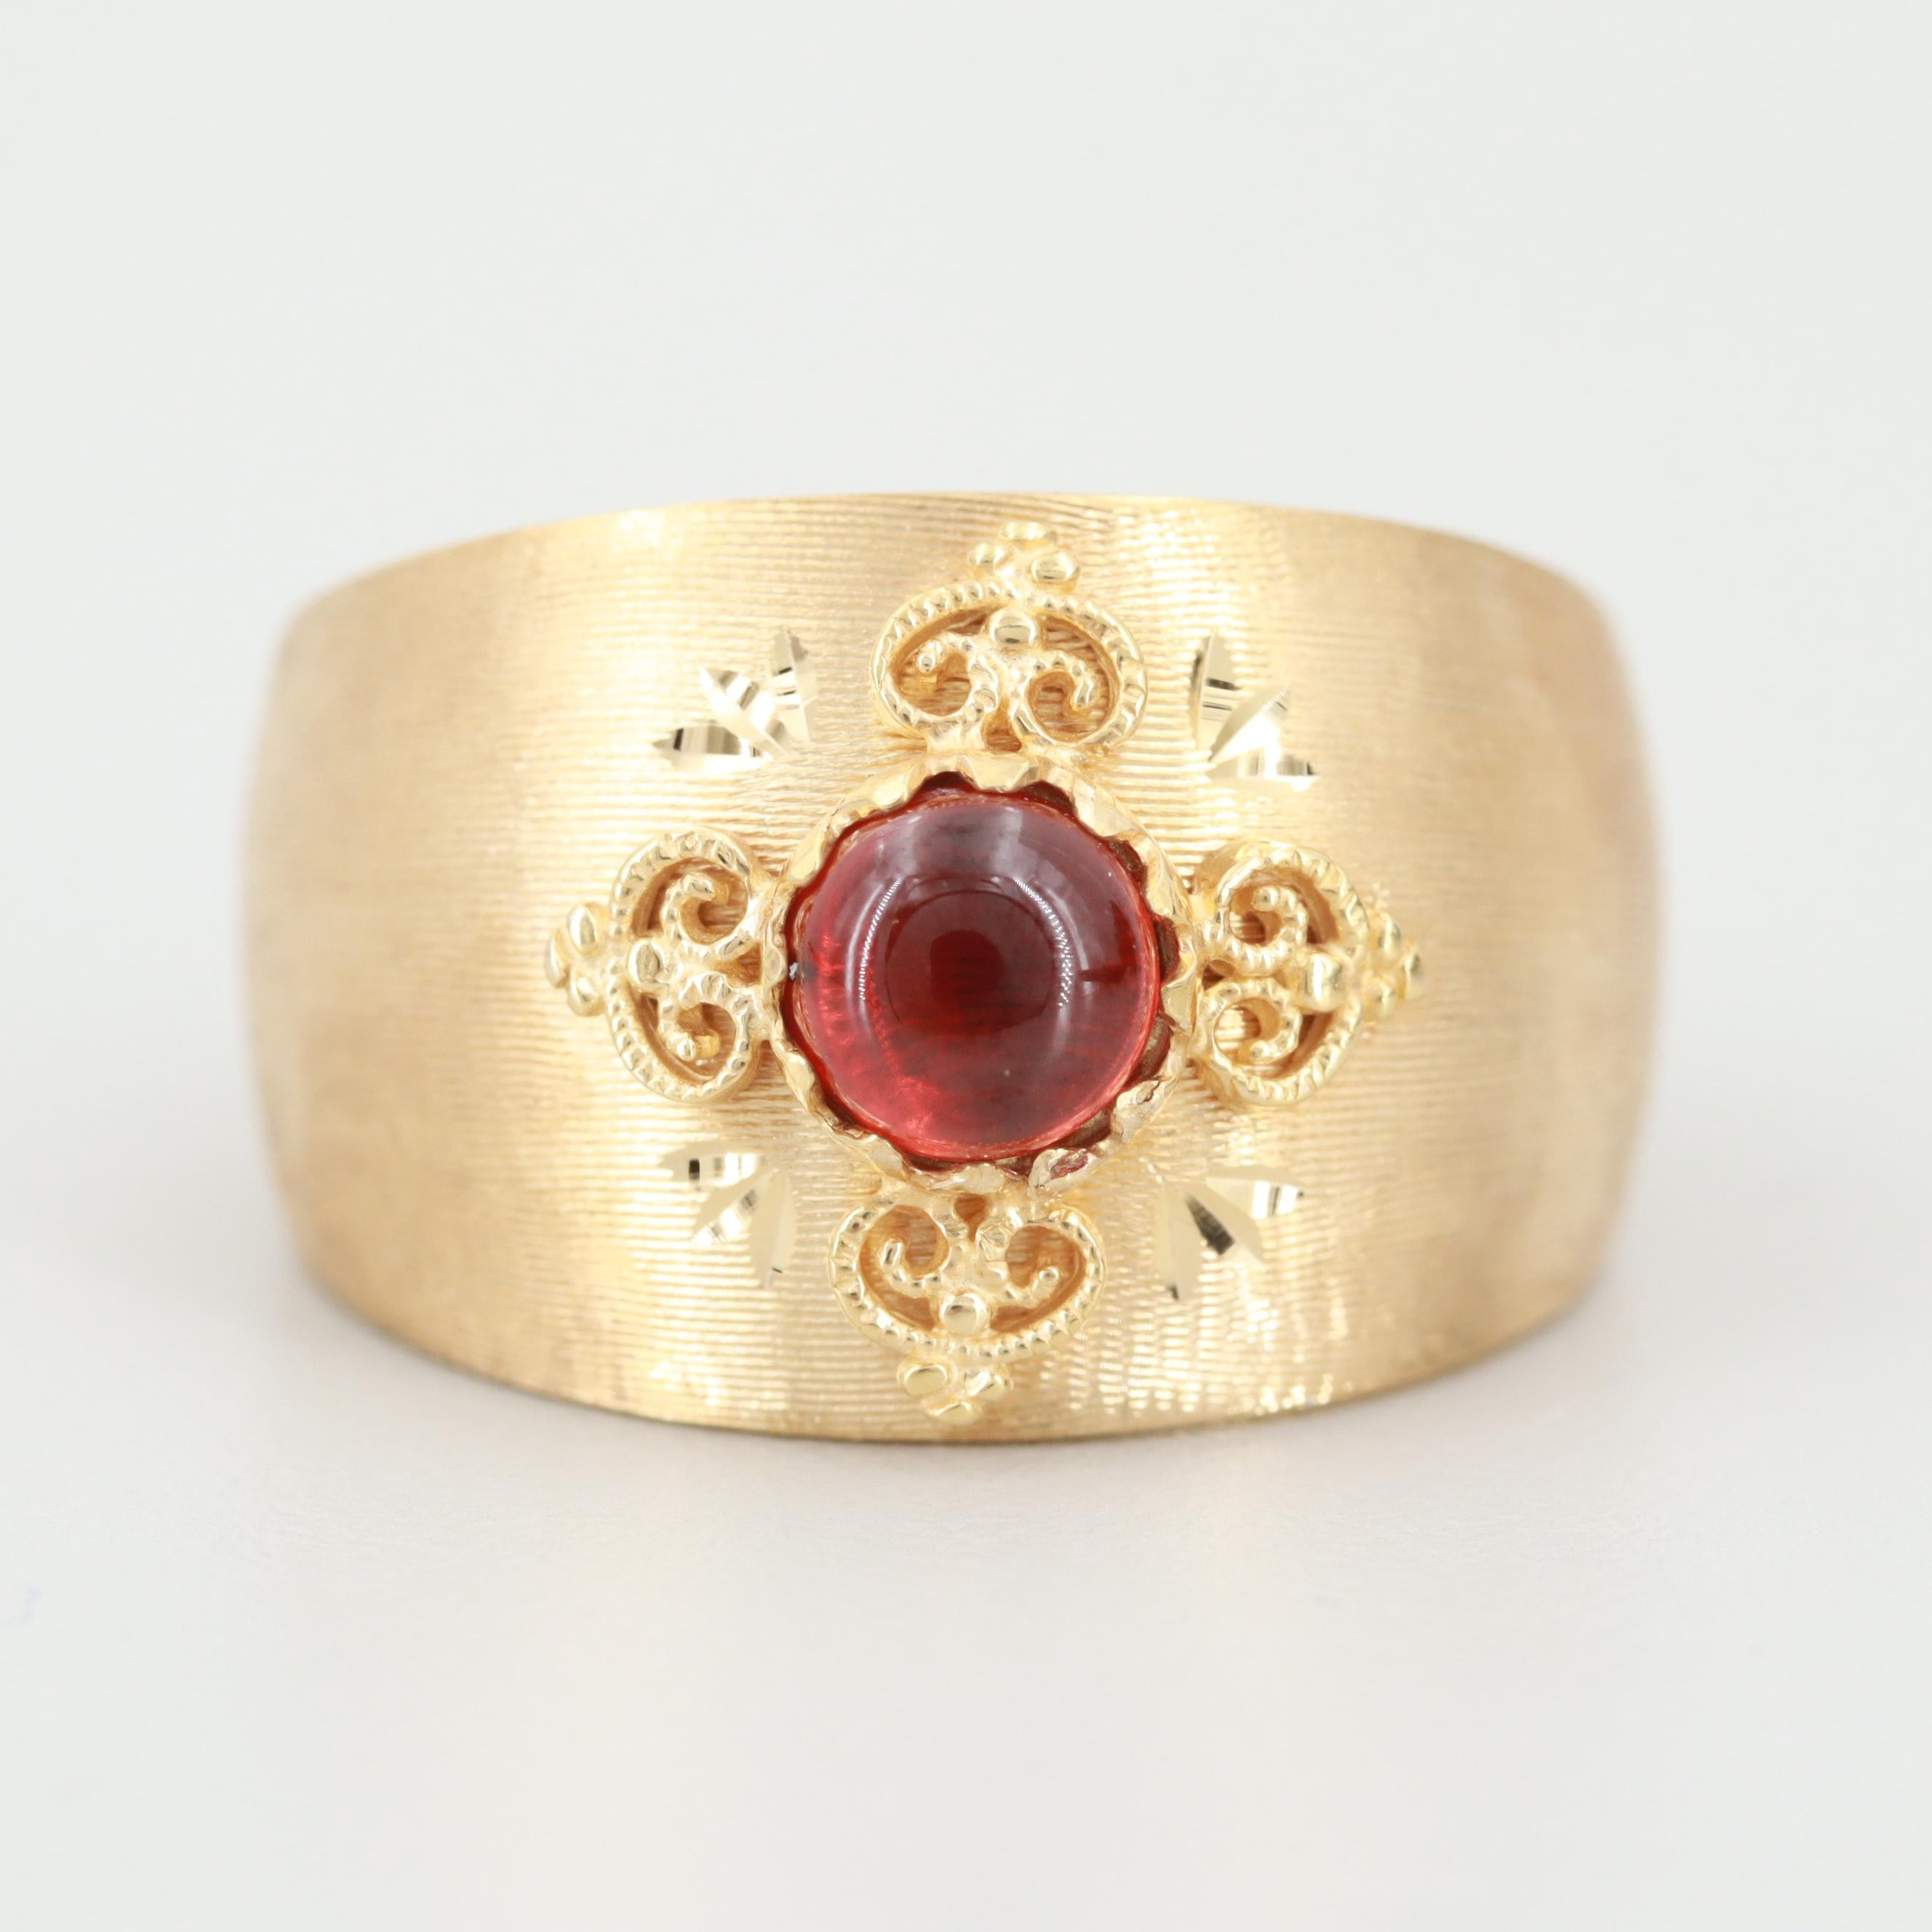 Italian 14K Yellow Gold Garnet Ring with Textured Accents